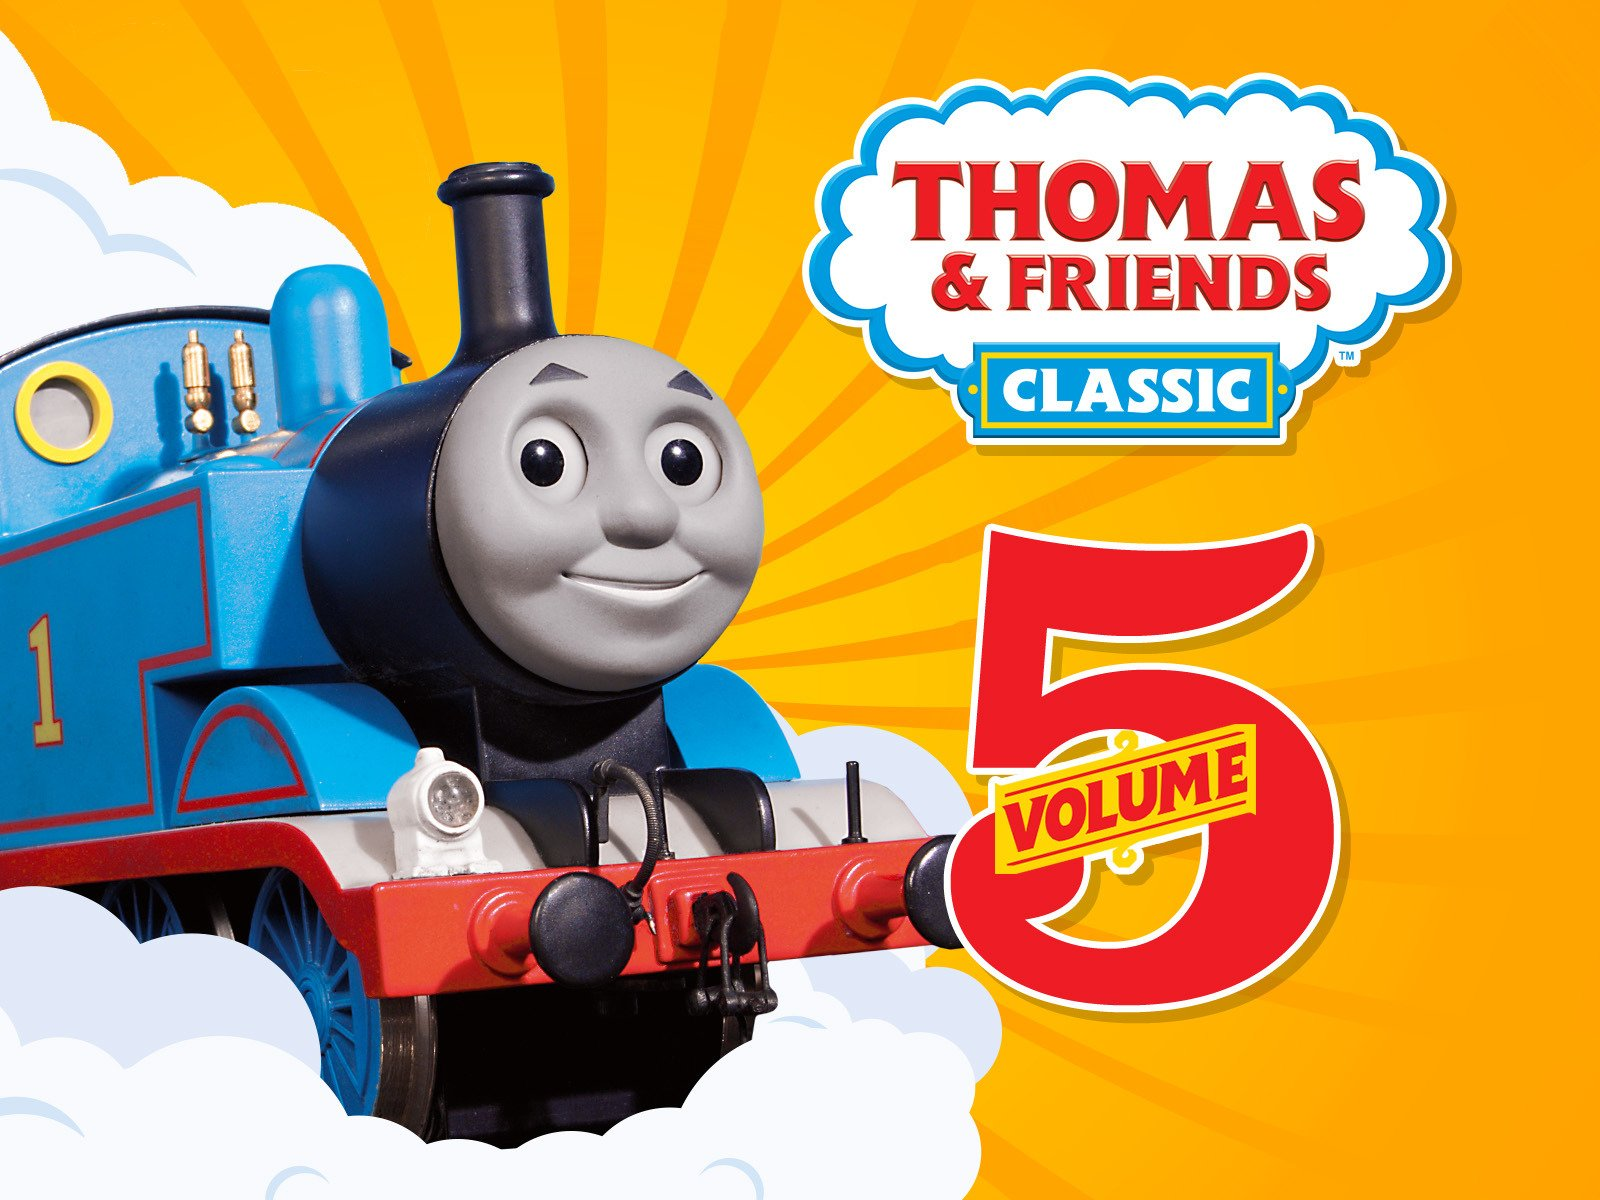 File:ThomasandFriendsClassicVolume5.jpg